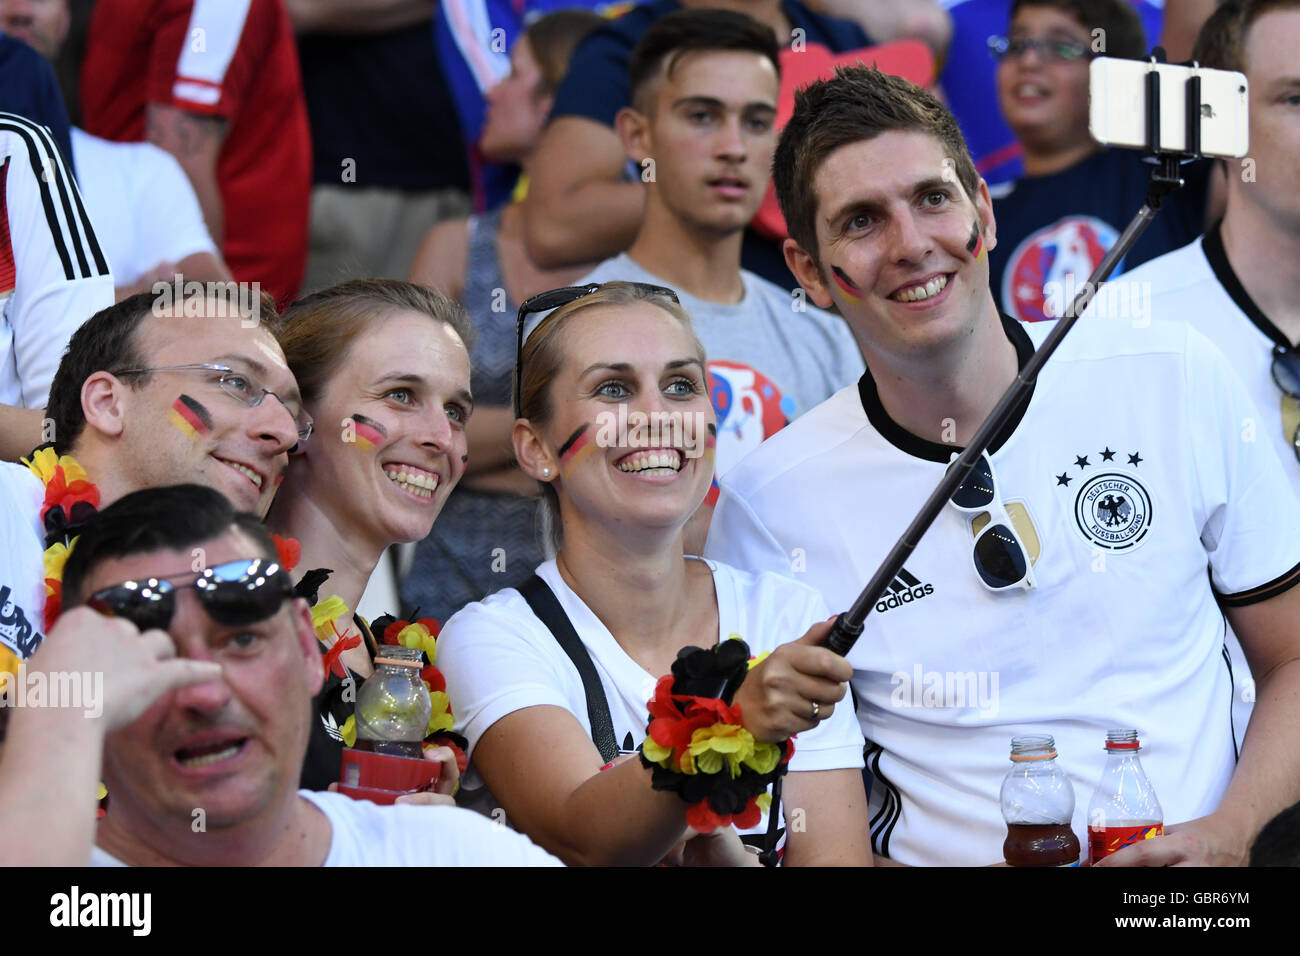 Supporeters (Germany) ; July 07, 2016 - Football : Uefa Euro France 2016, Semifinal, Germany 0-2 France at Stade - Stock Image